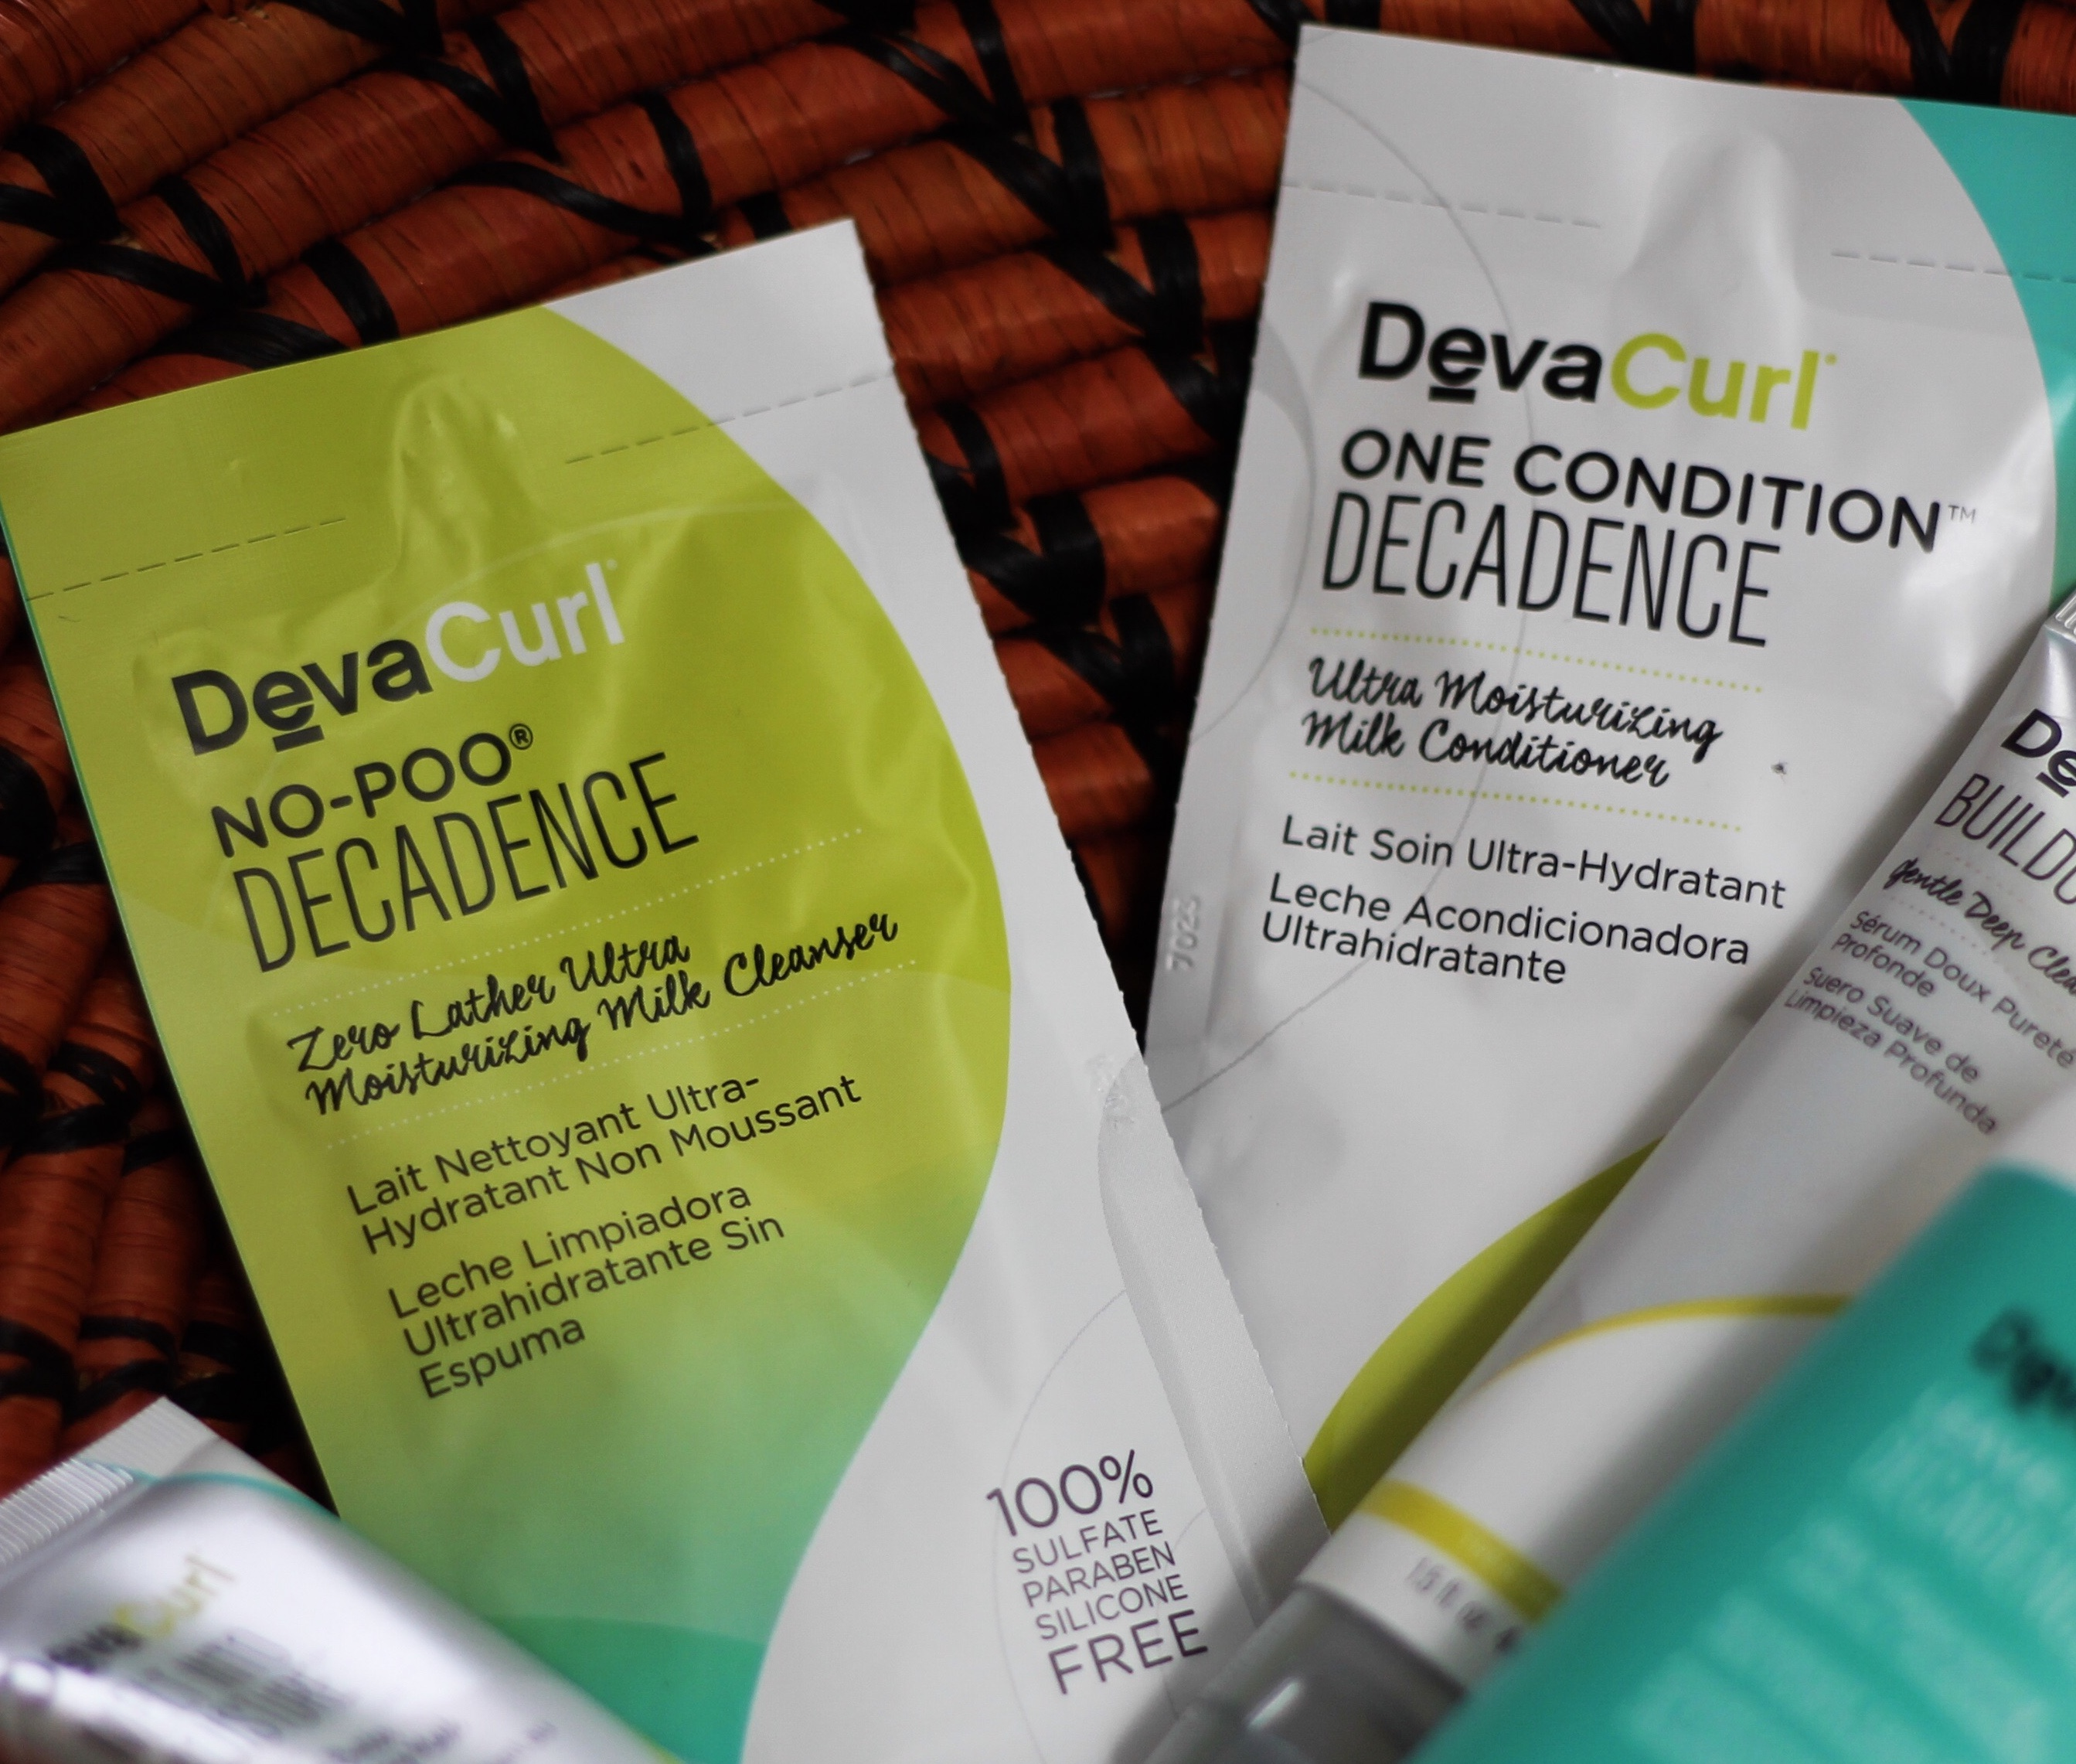 black kinky Coily hair blog, ugandan blogger, DEVACURL No-Poo® Decadence DEVACURL Buildup Buster™ Micellar Water Cleansing Serum DEVACURL Melt into Moisture Matcha Butter Conditioning Mask DEVACURL One Condition™ Decadence DEVACURL Leave-In Decadence™ Ultra Moisturizing Leave-In Conditioner